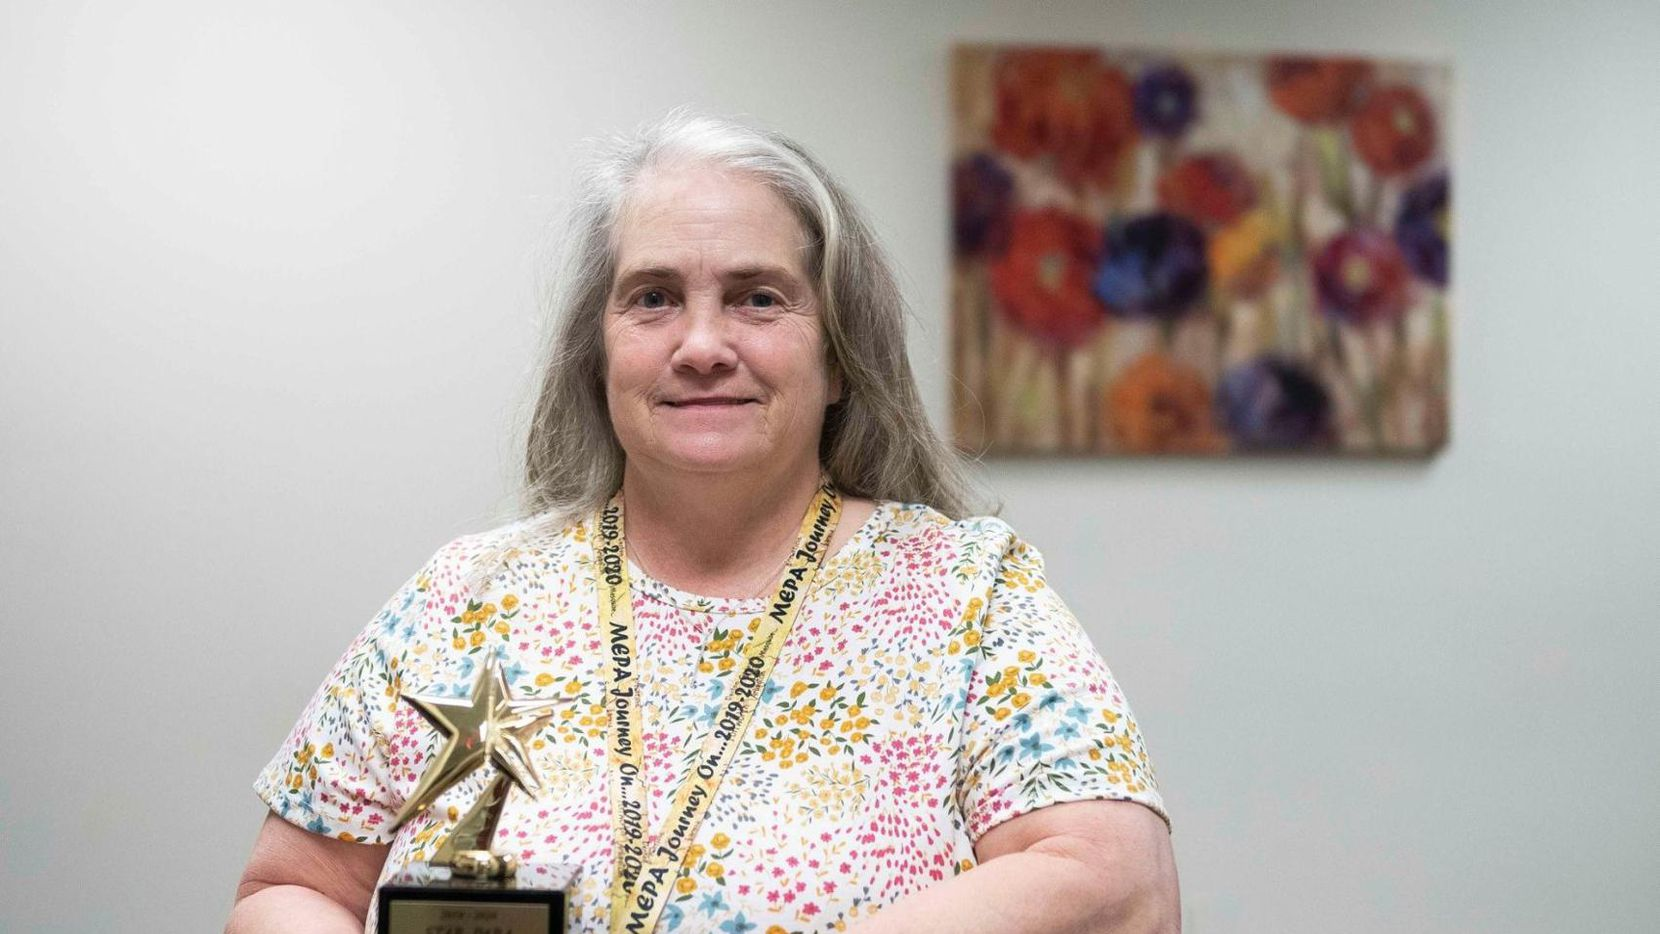 Yvonne Smeltze poses for a photo with the STAR Paraprofessional of the Year award. She won the award despite dealing with a house fire in 2019 that displaced her for half the year.